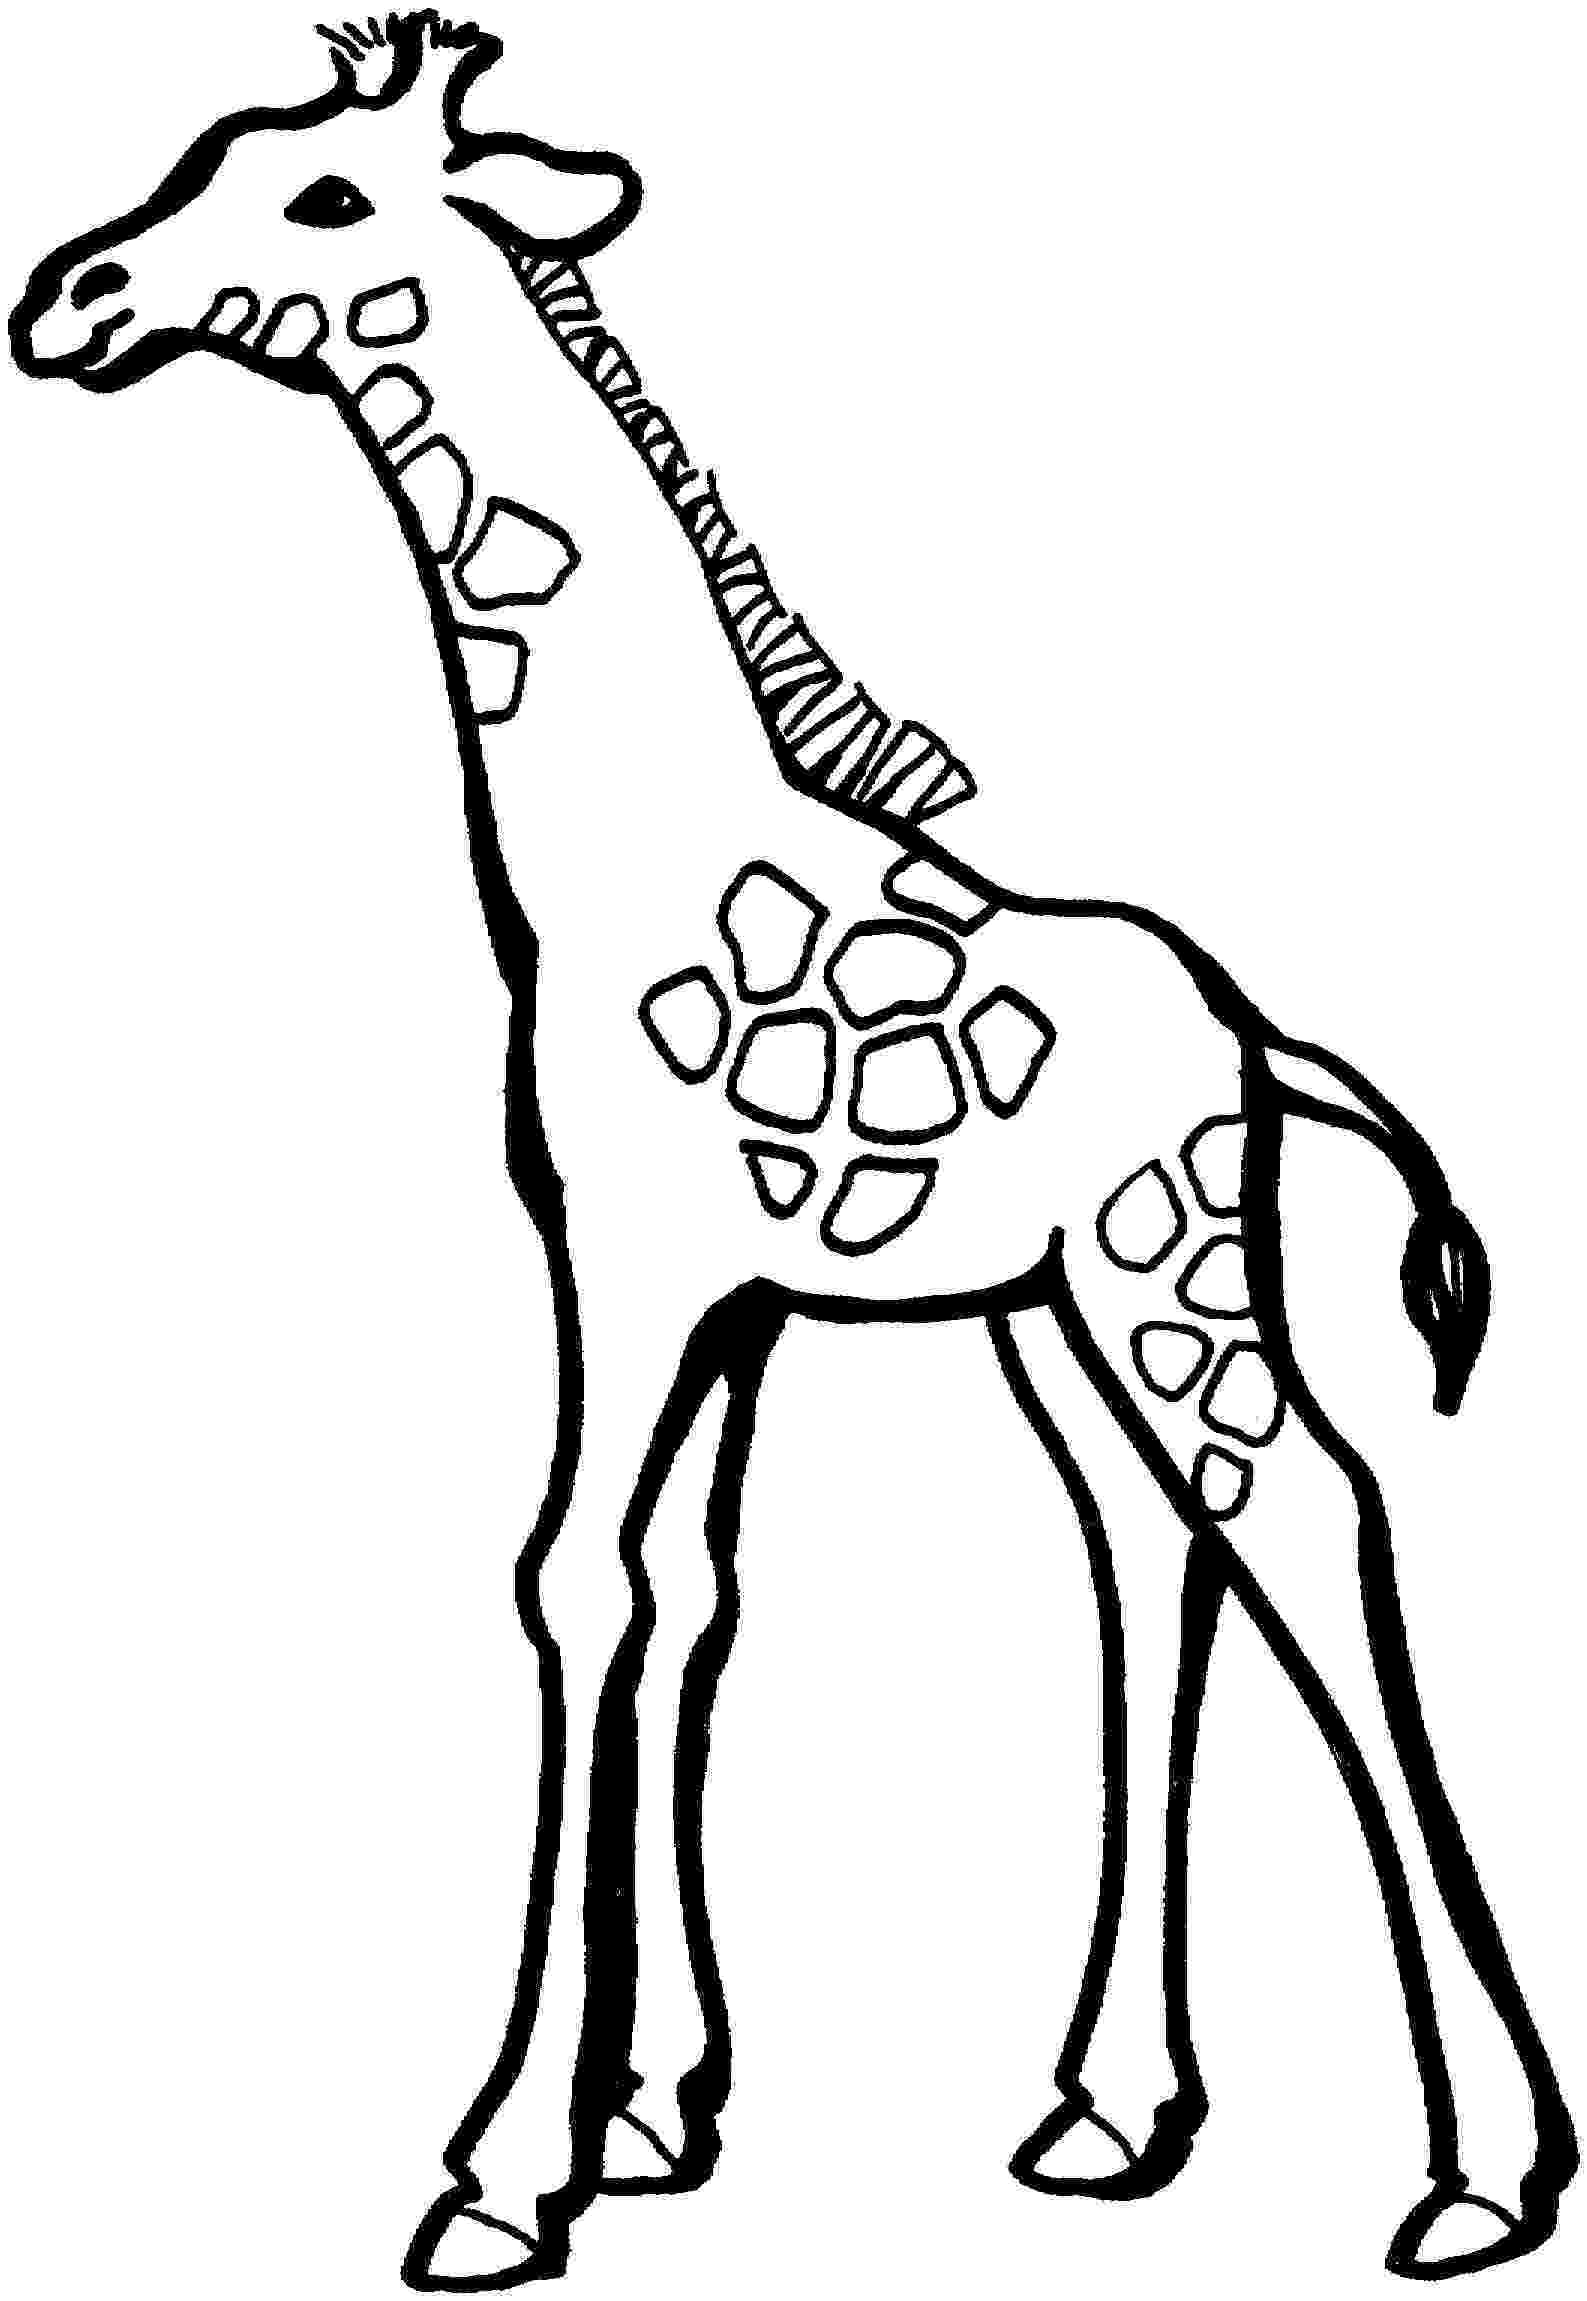 giraffe to color kids n funcom 45 coloring pages of giraffe to giraffe color 1 1